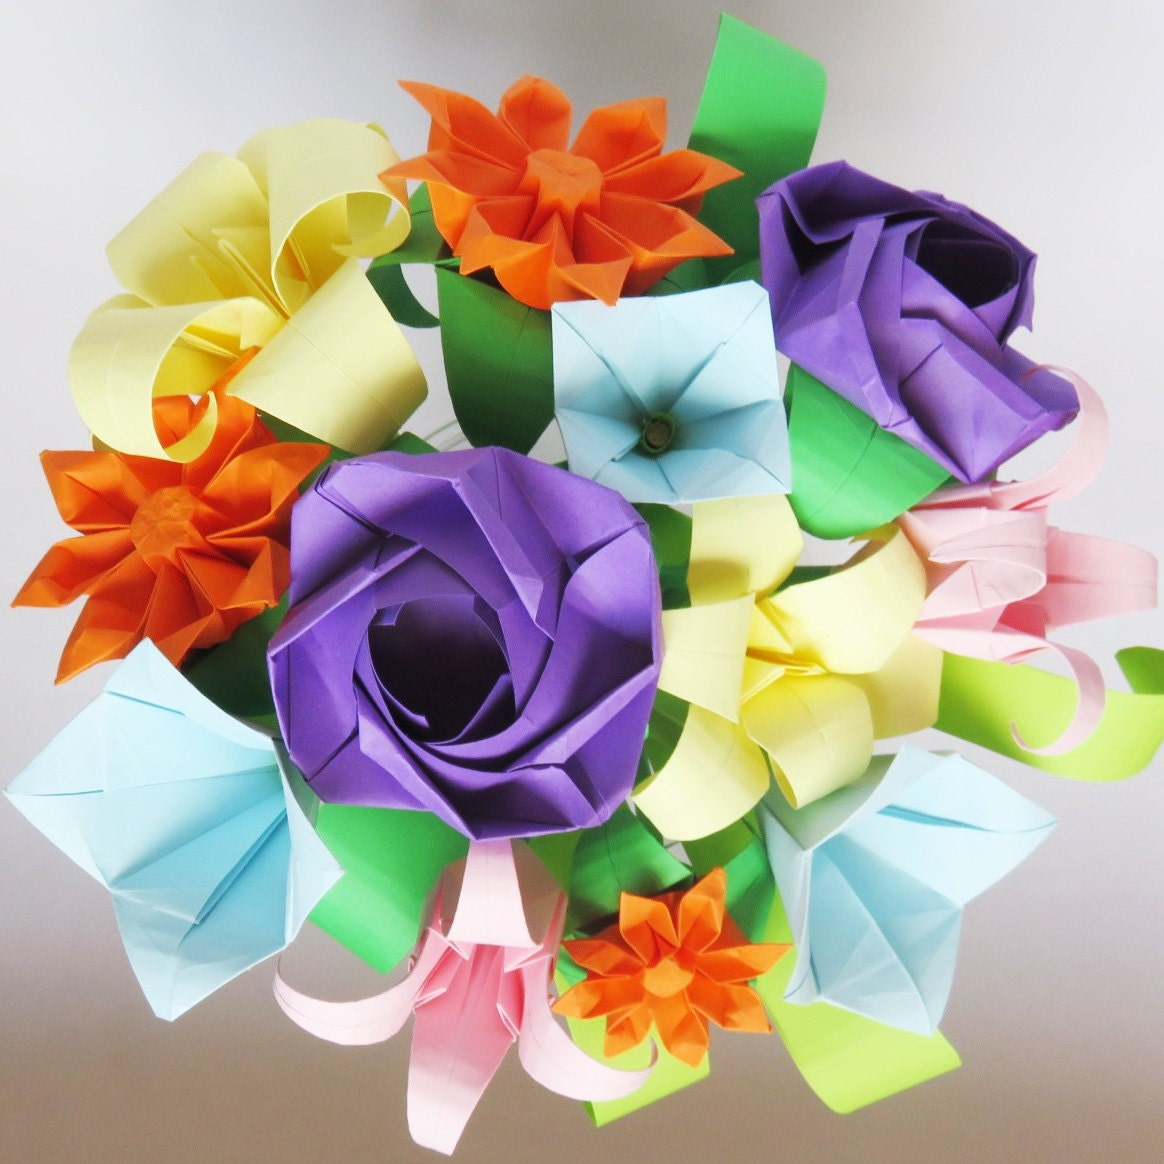 Tiny Bunch Of Colourful Origami Wild Flowers 1st Etsy